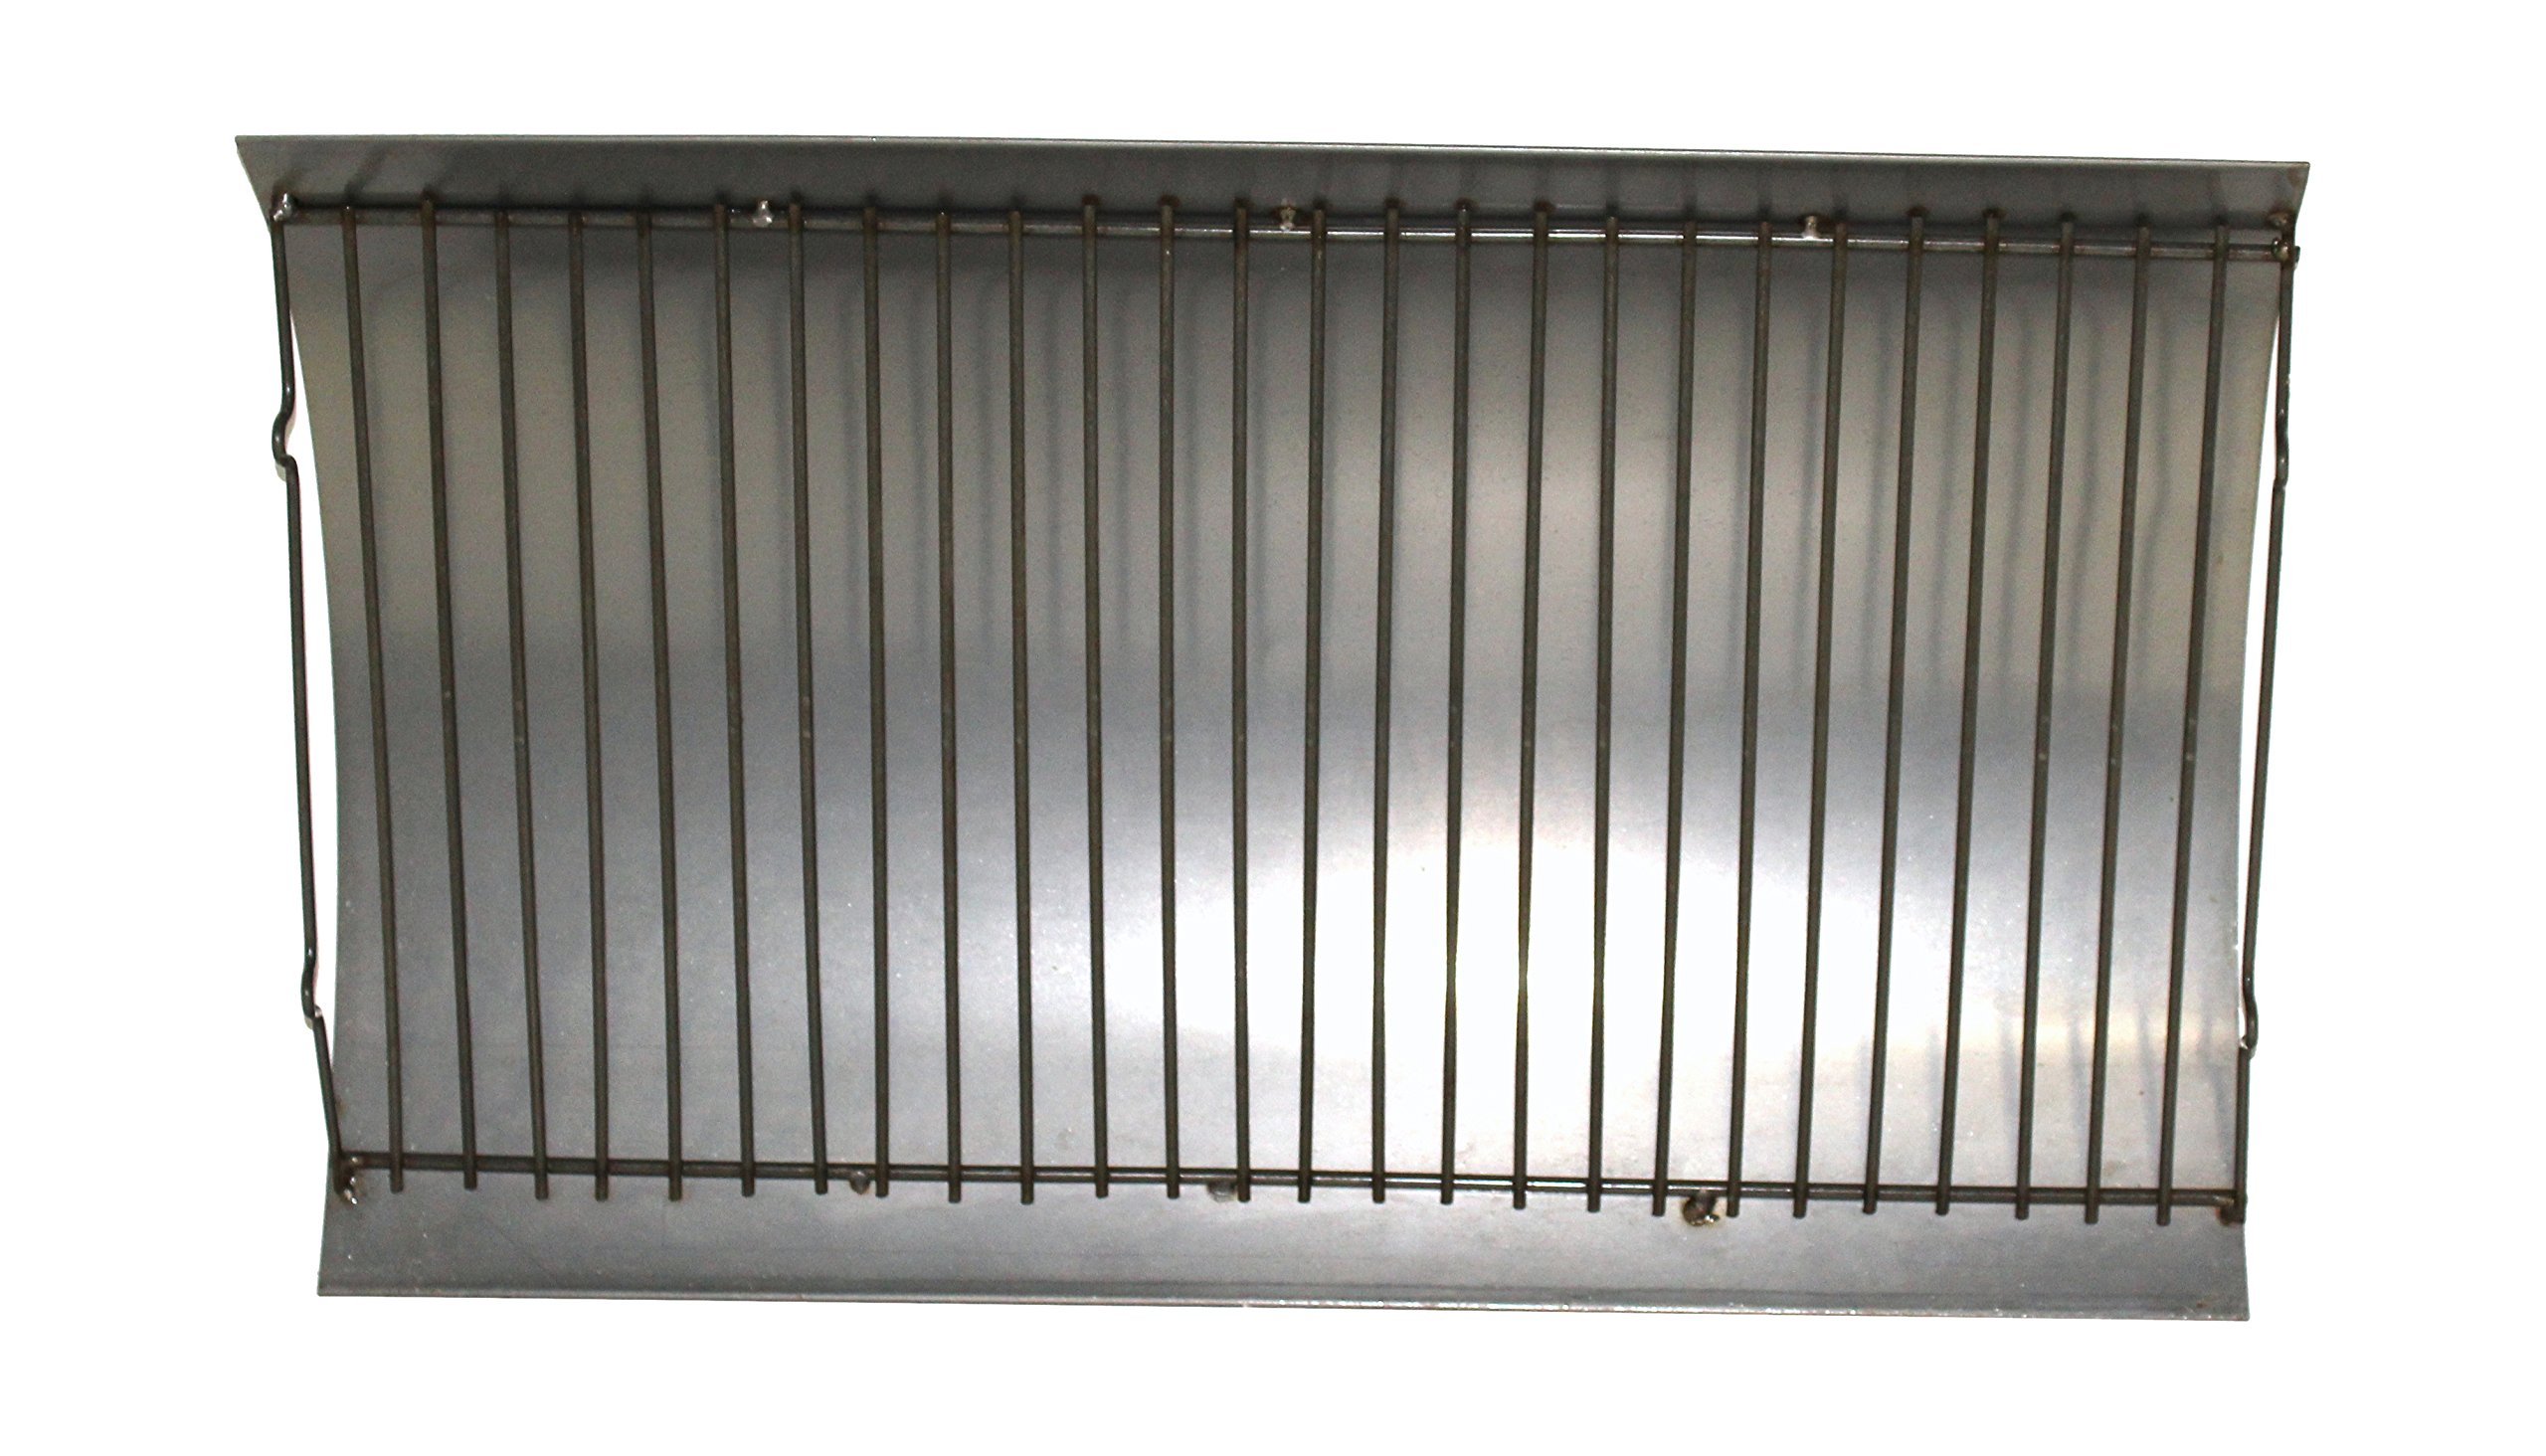 Char-Broil 2230-03-000-01 Fire Grate